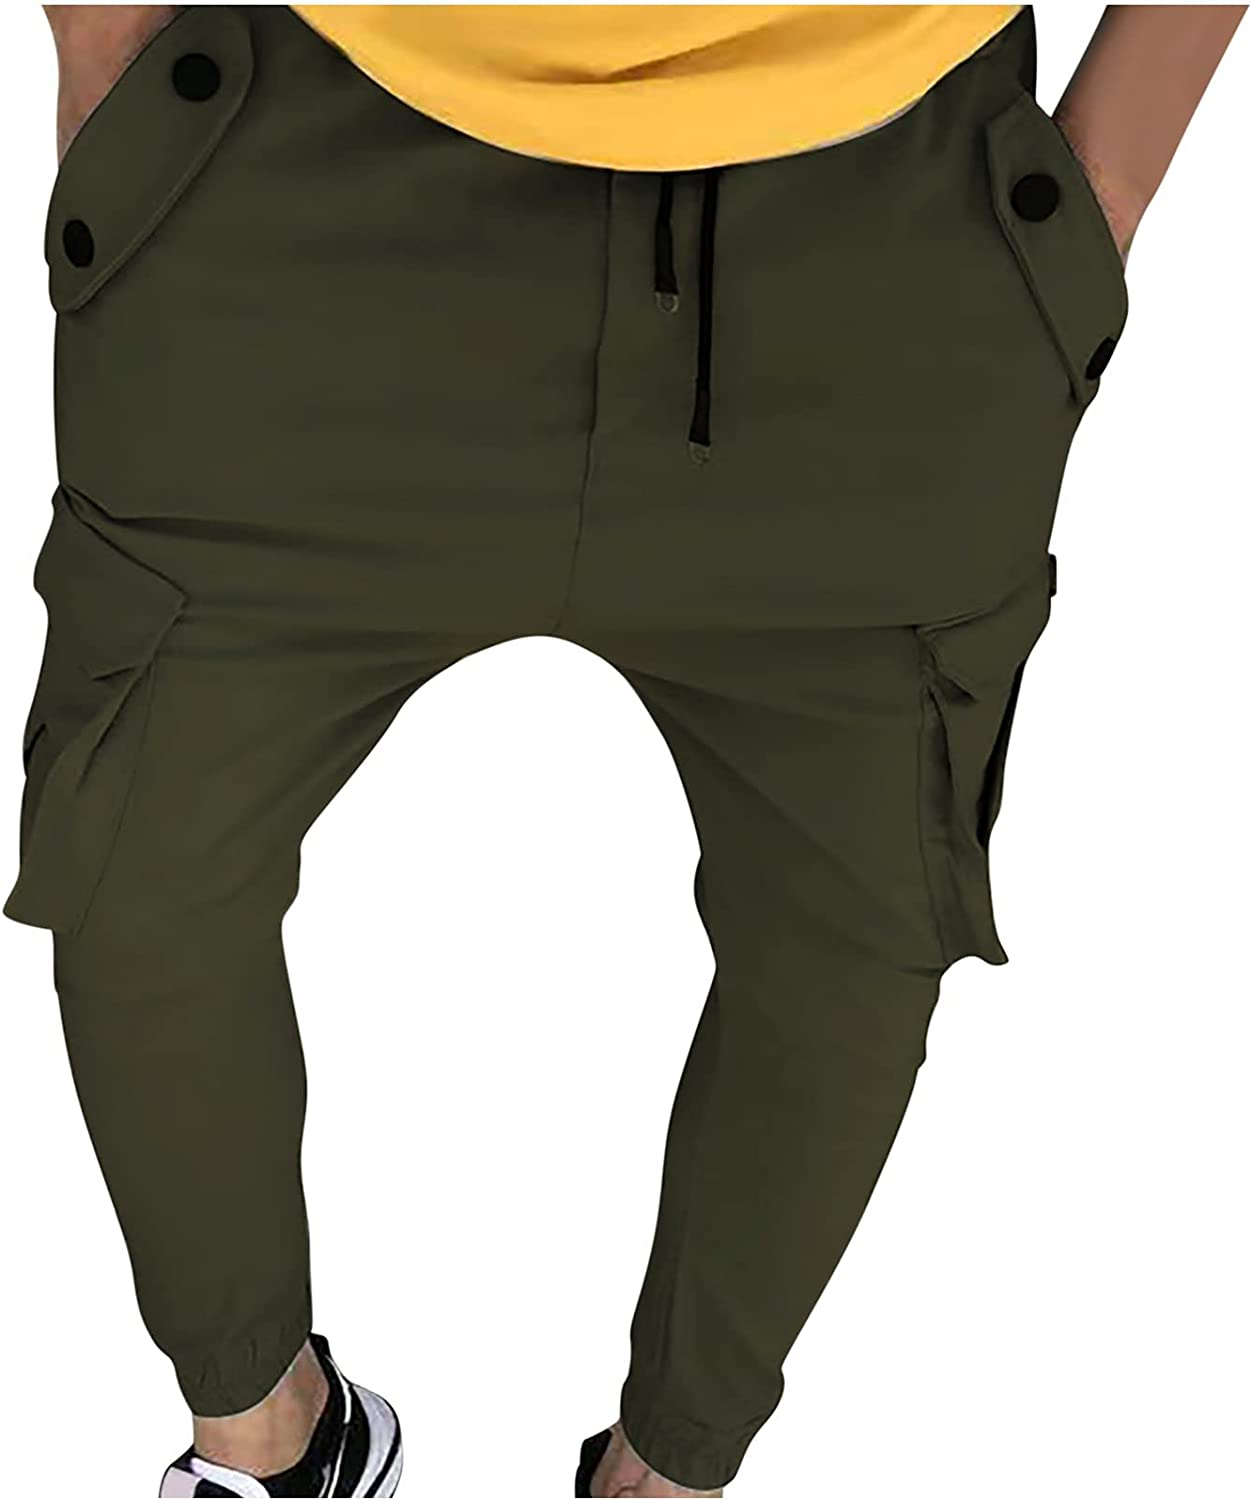 Sinzelimin Pants for Men's Cargo Pants Fitness Athletic Running